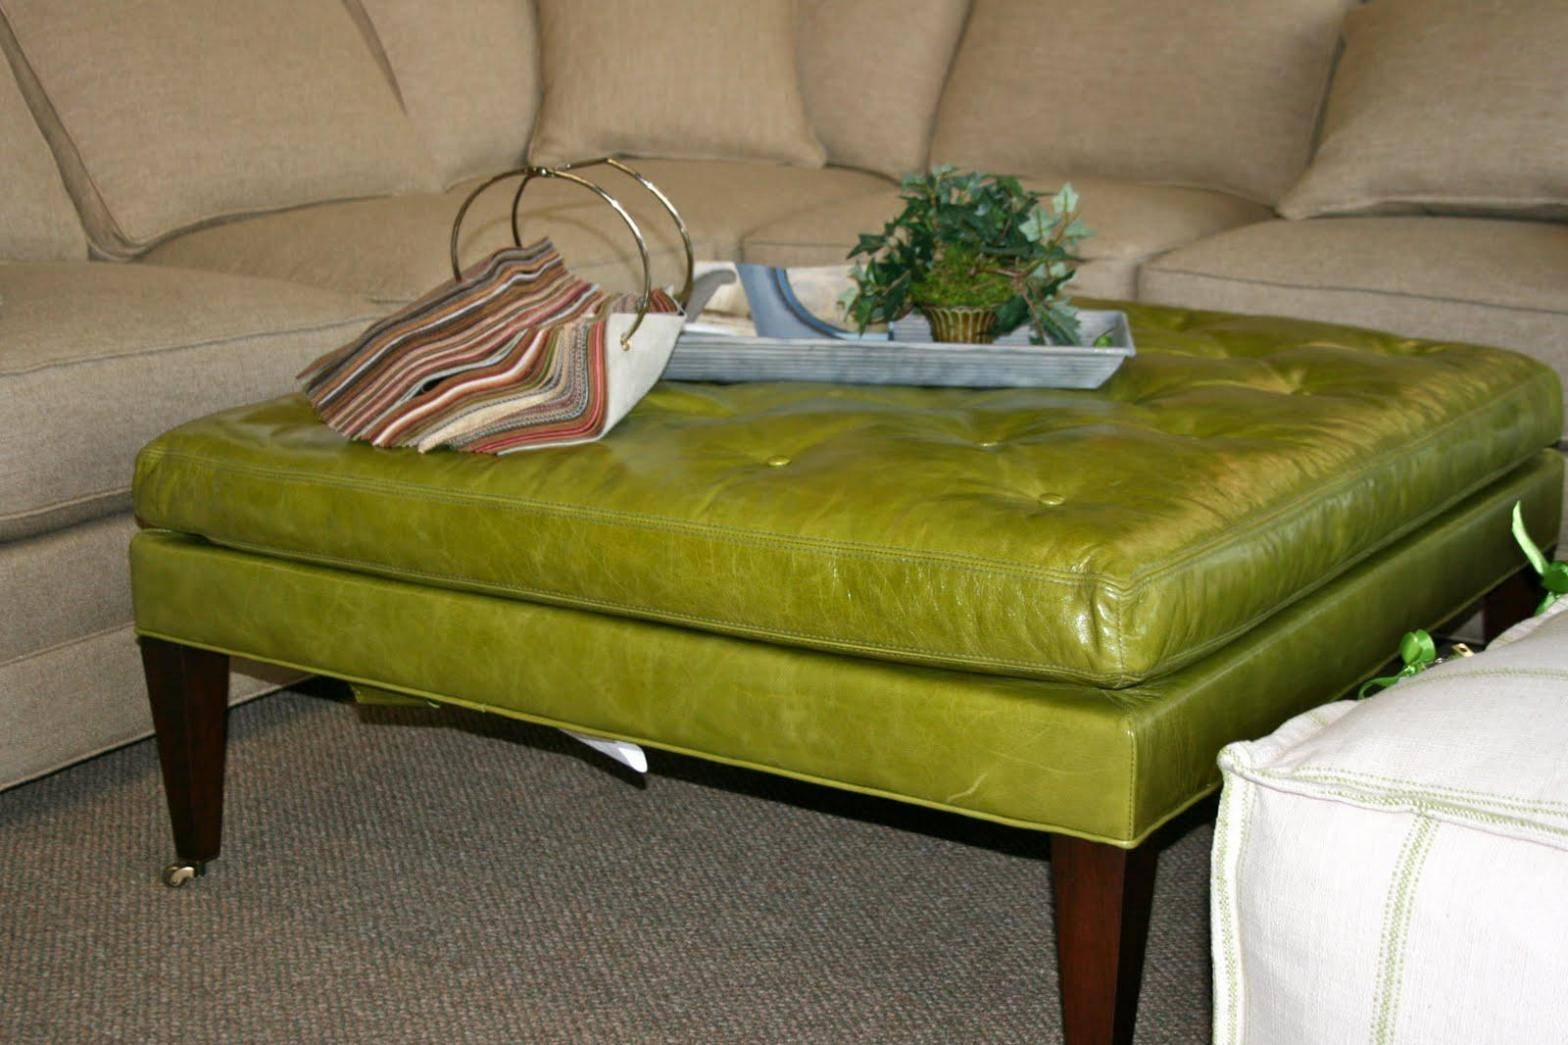 Diy Fabric Coffee Table Ottoman : Bed & Shower - Contemporary within Green Ottoman Coffee Tables (Image 8 of 30)